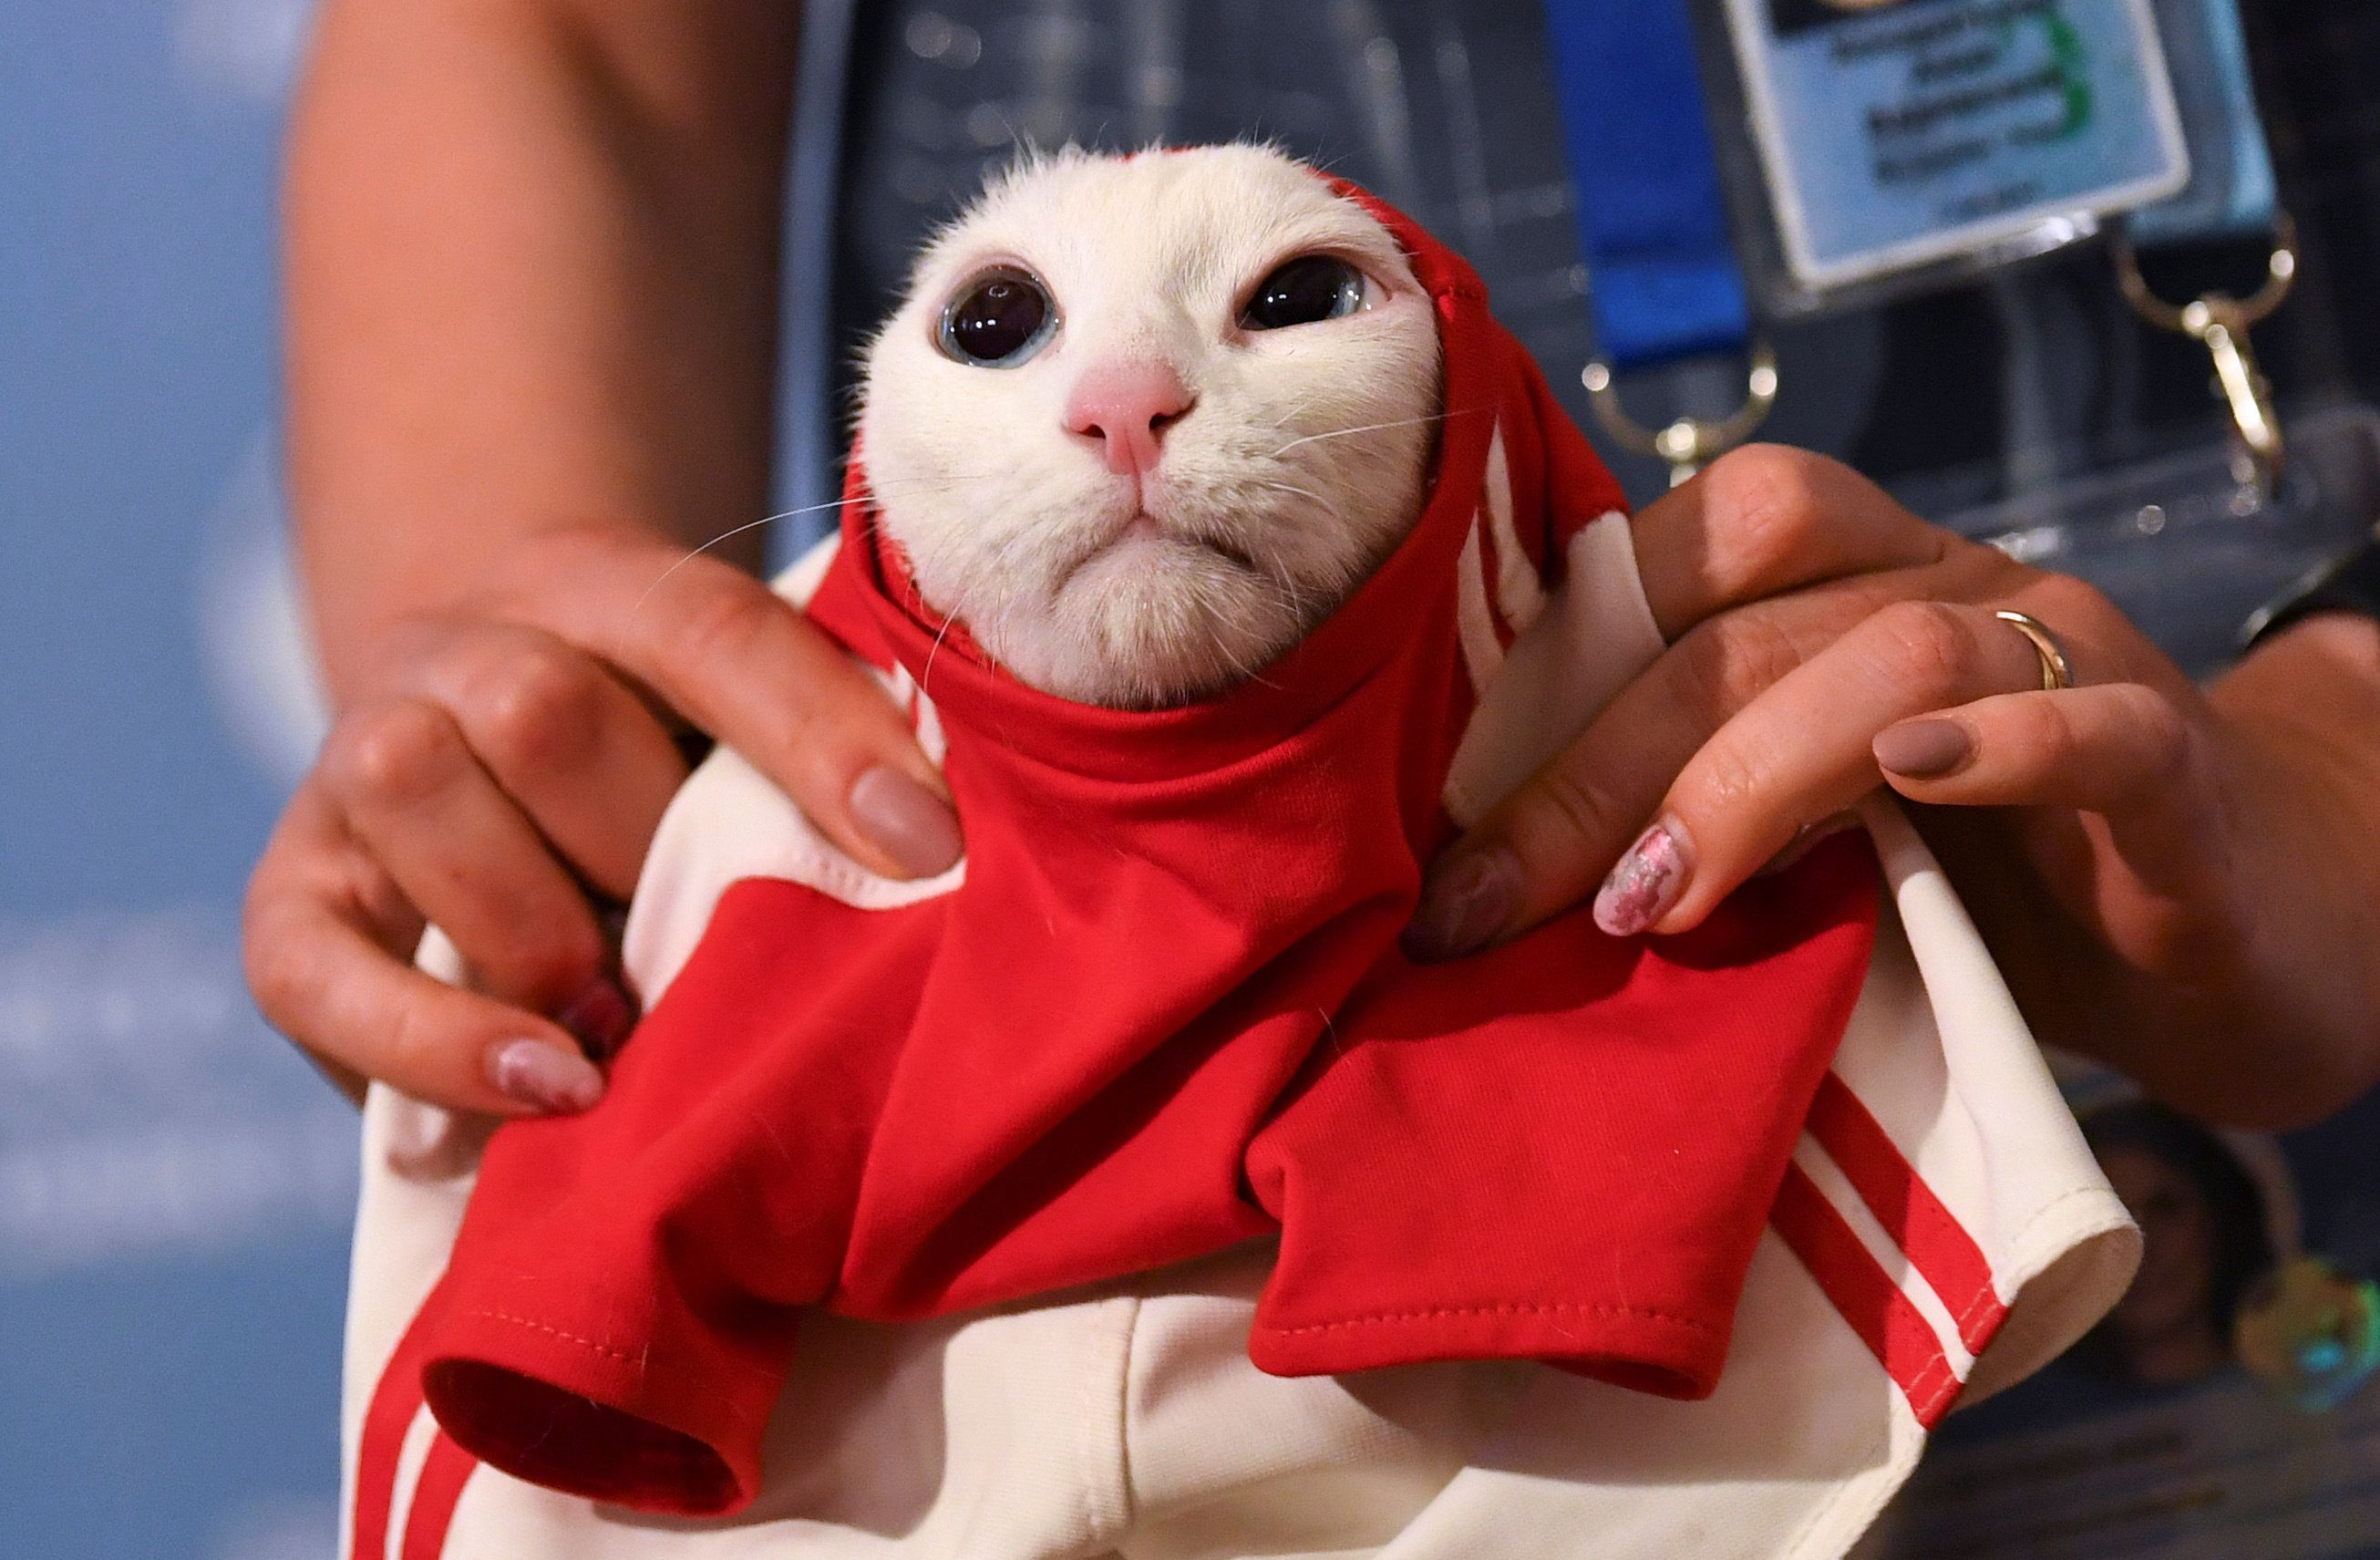 5 Cute Animals To End The Week: Achilles The 'Psychic' Cat And A Patient